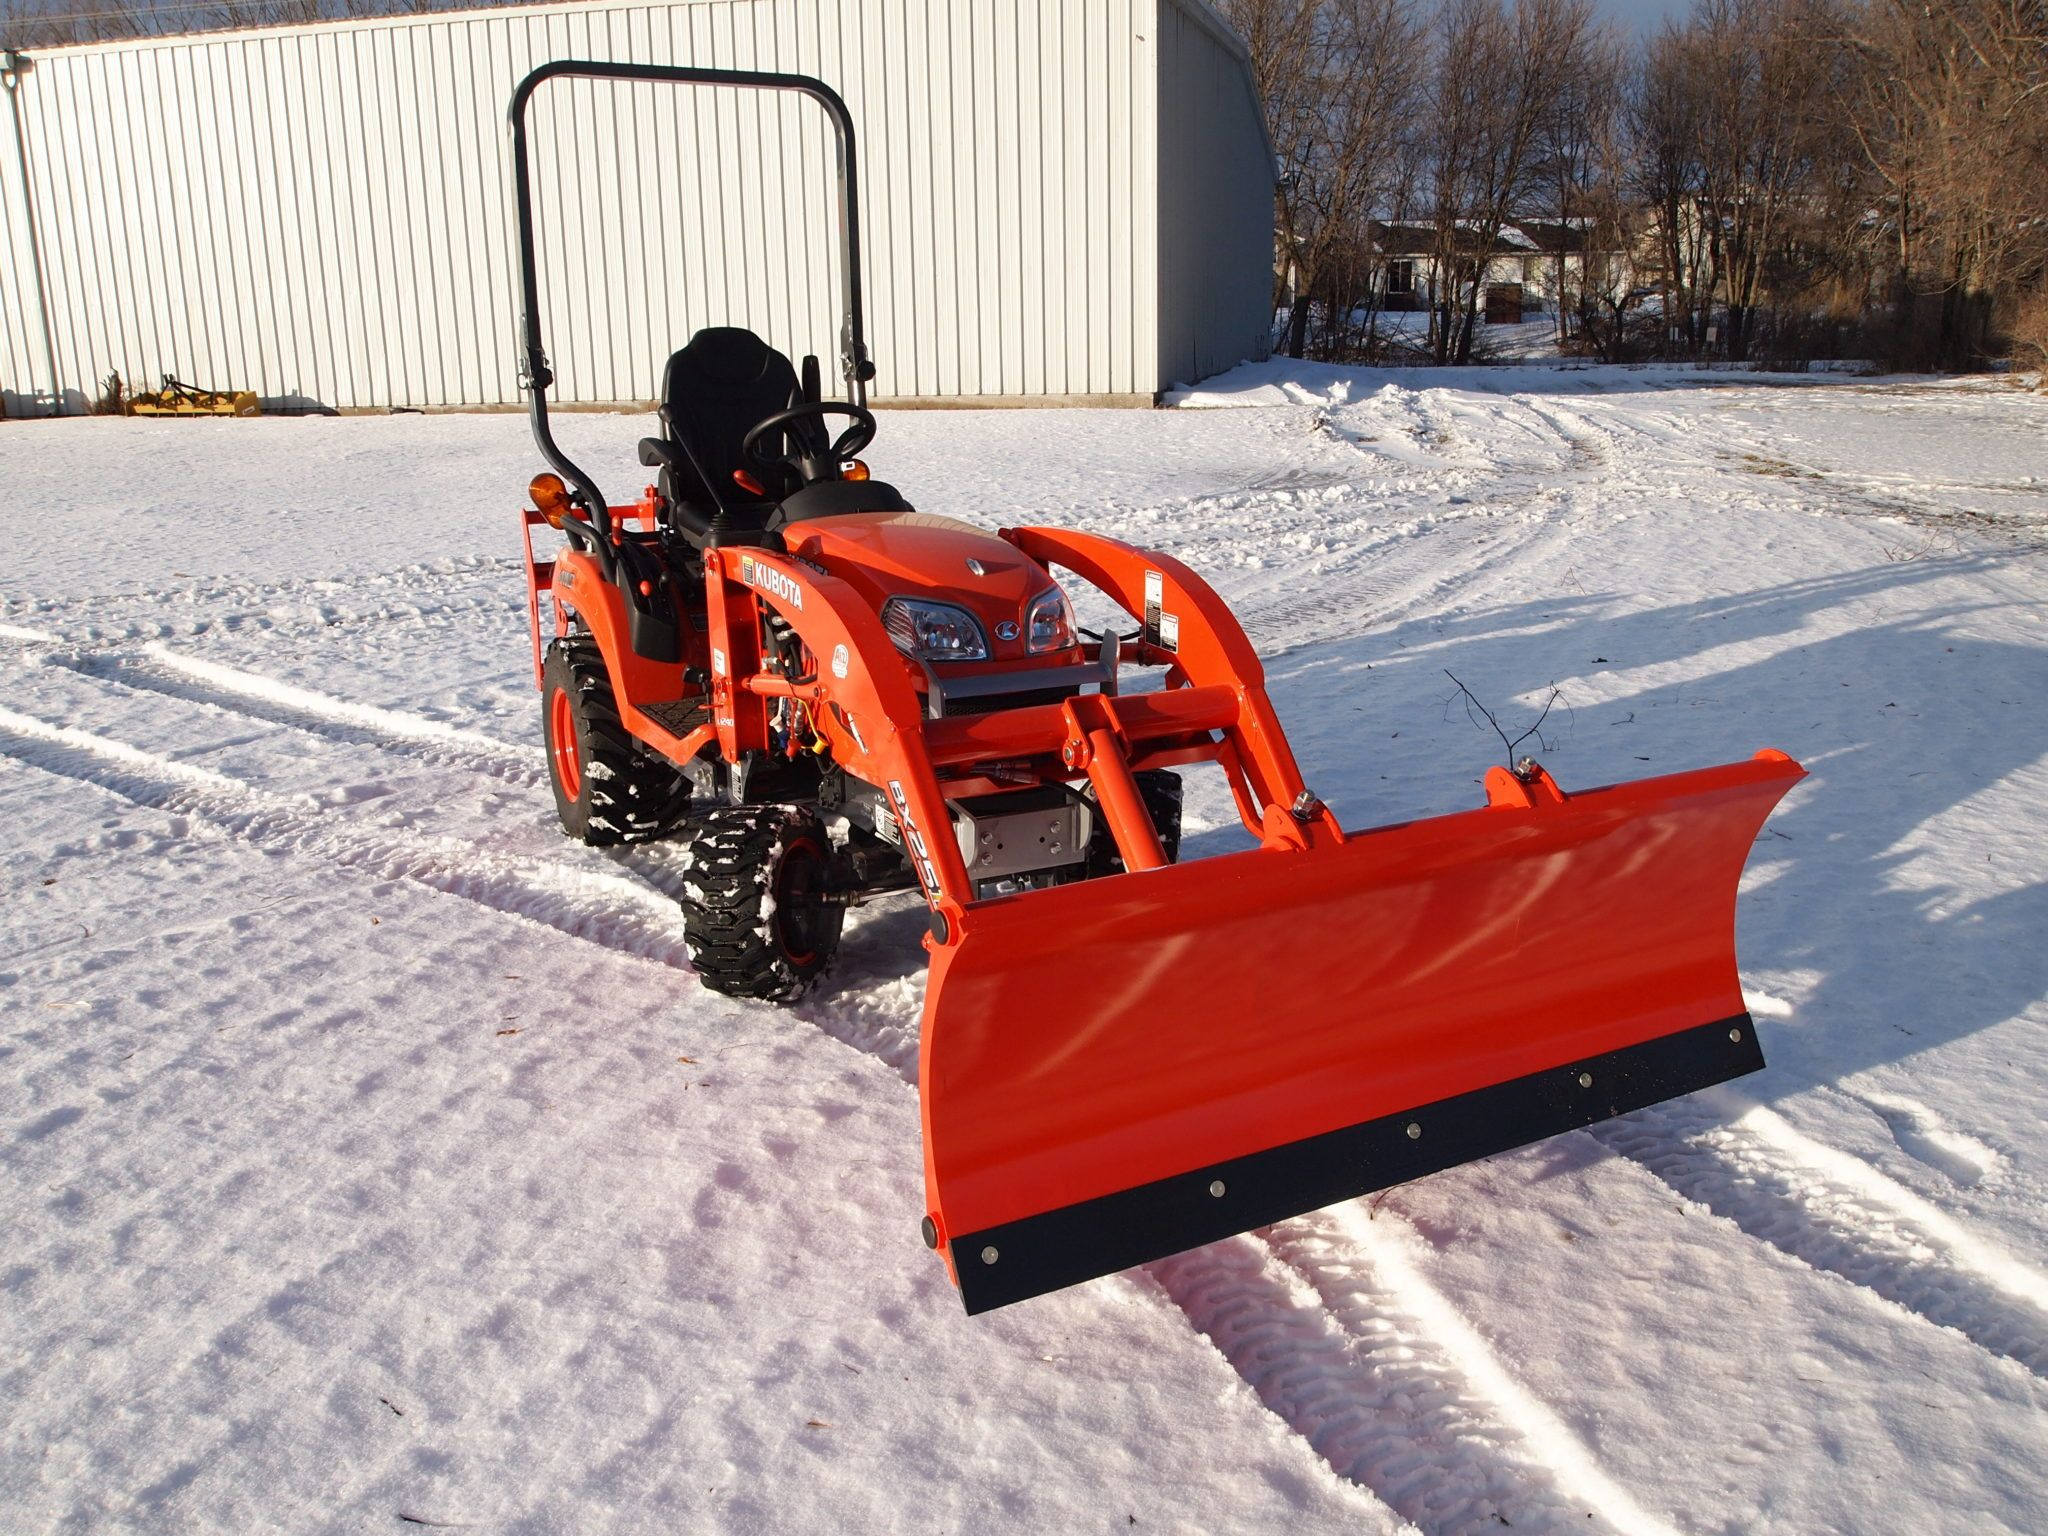 Kubota BX Quick attach snow plow attachments - BxAttachments ... on kubota bx24 parts diagram, new holland tc30 wiring diagram, ford 1720 wiring diagram, kubota bx23 neutral safety switch, kubota tractor wiring diagrams, ez dumper trailer wiring diagram, kubota bx23 parts, john deere 3203 wiring diagram, kubota bx22 parts diagram, john deere 1435 wiring diagram, kubota bx23 tractor, john deere 2320 wiring diagram, kubota bx23 remote control, john deere 1070 wiring diagram, kioti lb1914 wiring diagram, kubota regulator wiring, fans wiring diagram, lights wiring diagram, accessories wiring diagram, kubota tractor glow plug diagram,